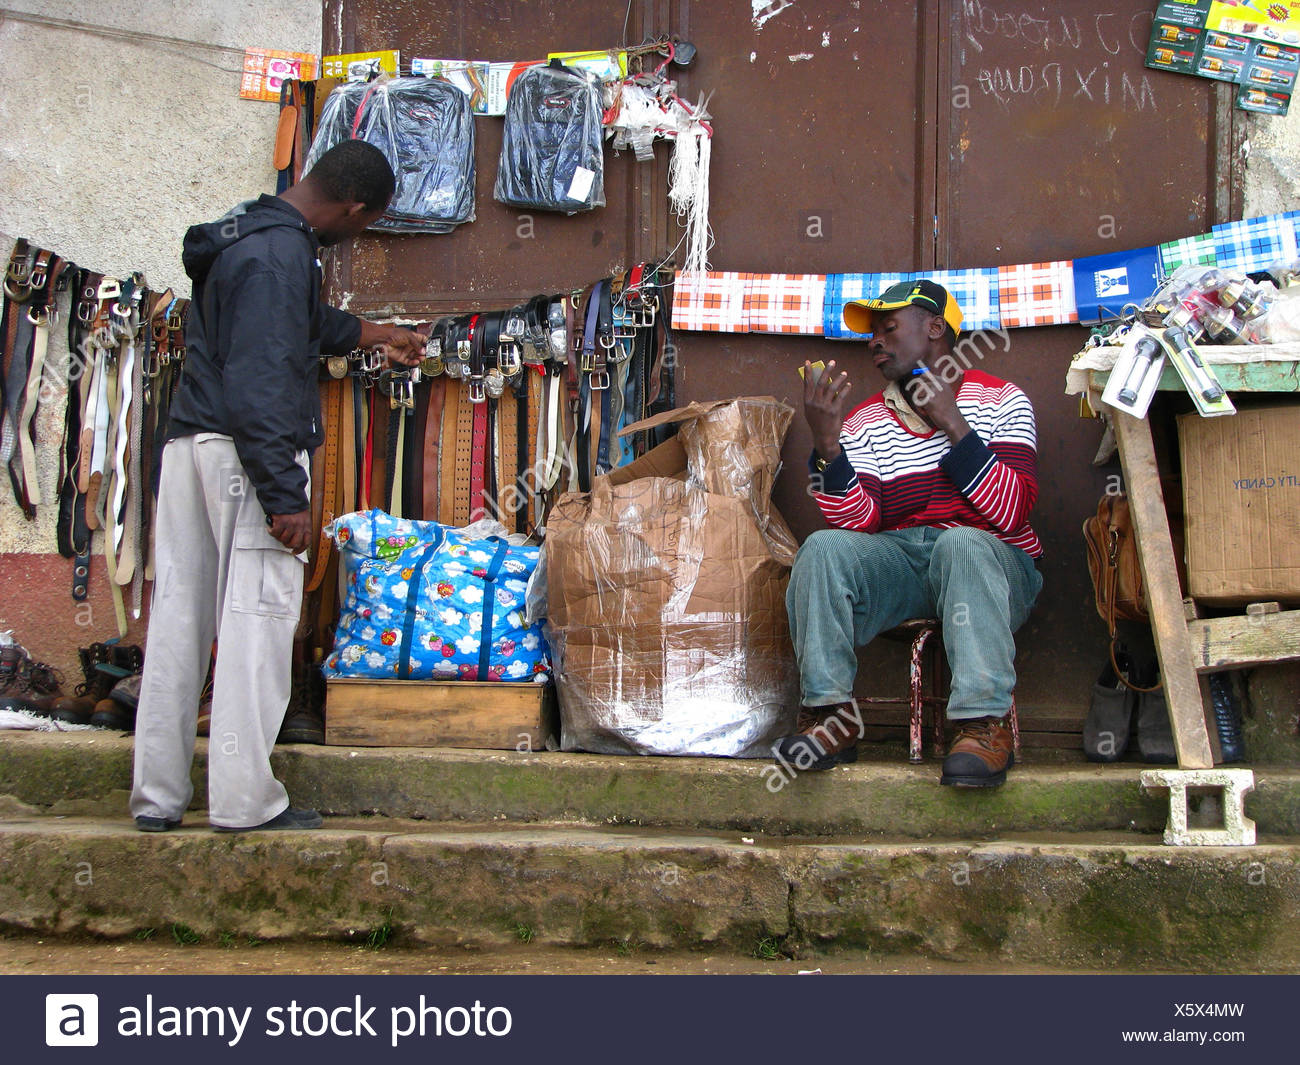 young man sitting at his general merchandise sales booth shaving dry, another , Haiti, Province de l'Ouest, Kenskoff, Port-Au-Prince - Stock Image